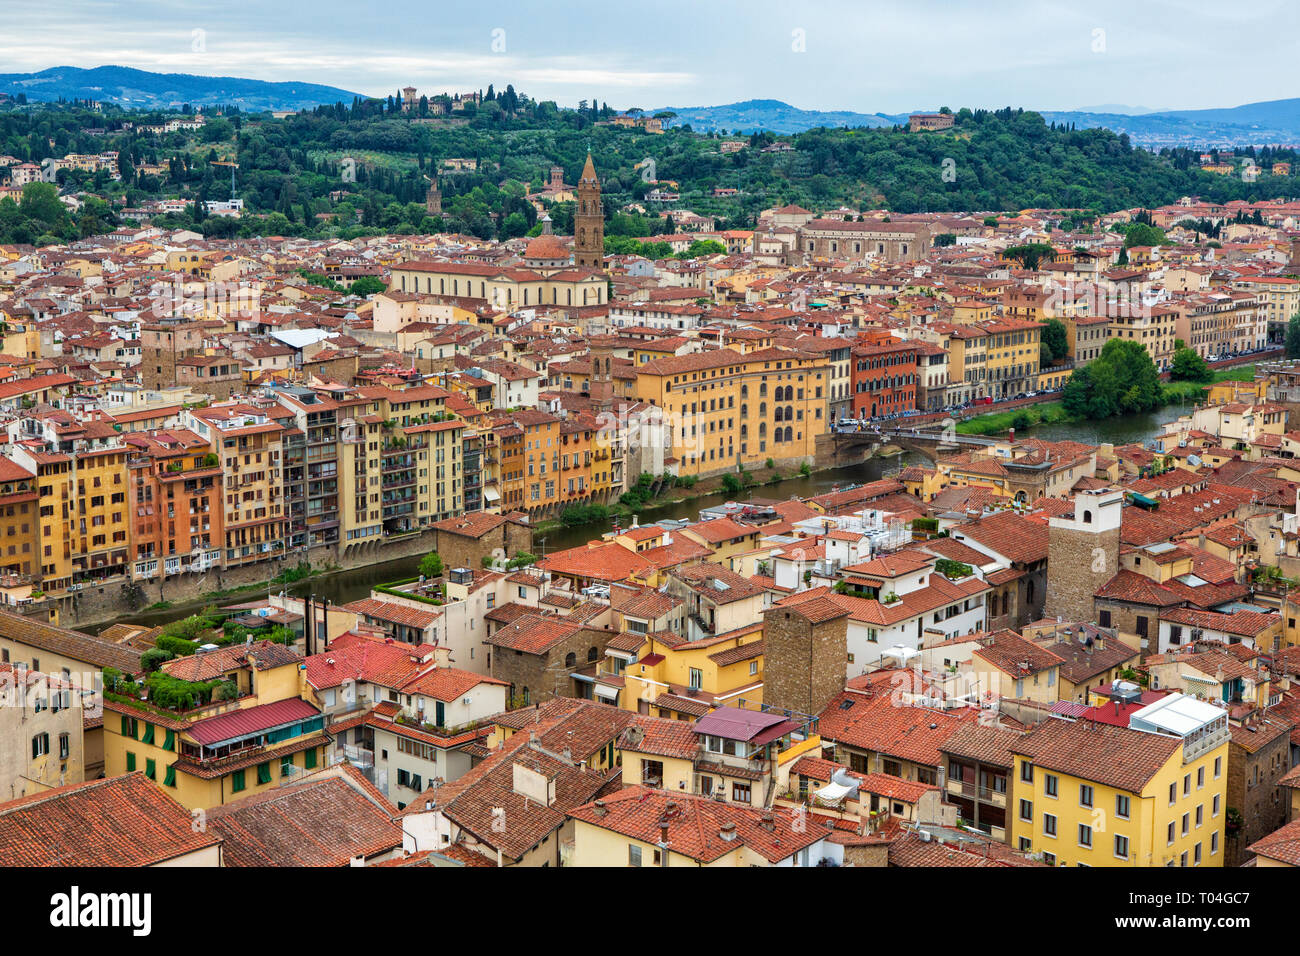 Florence, Tuscany, Italy seen from the Palazzo Vecchio. - Stock Image